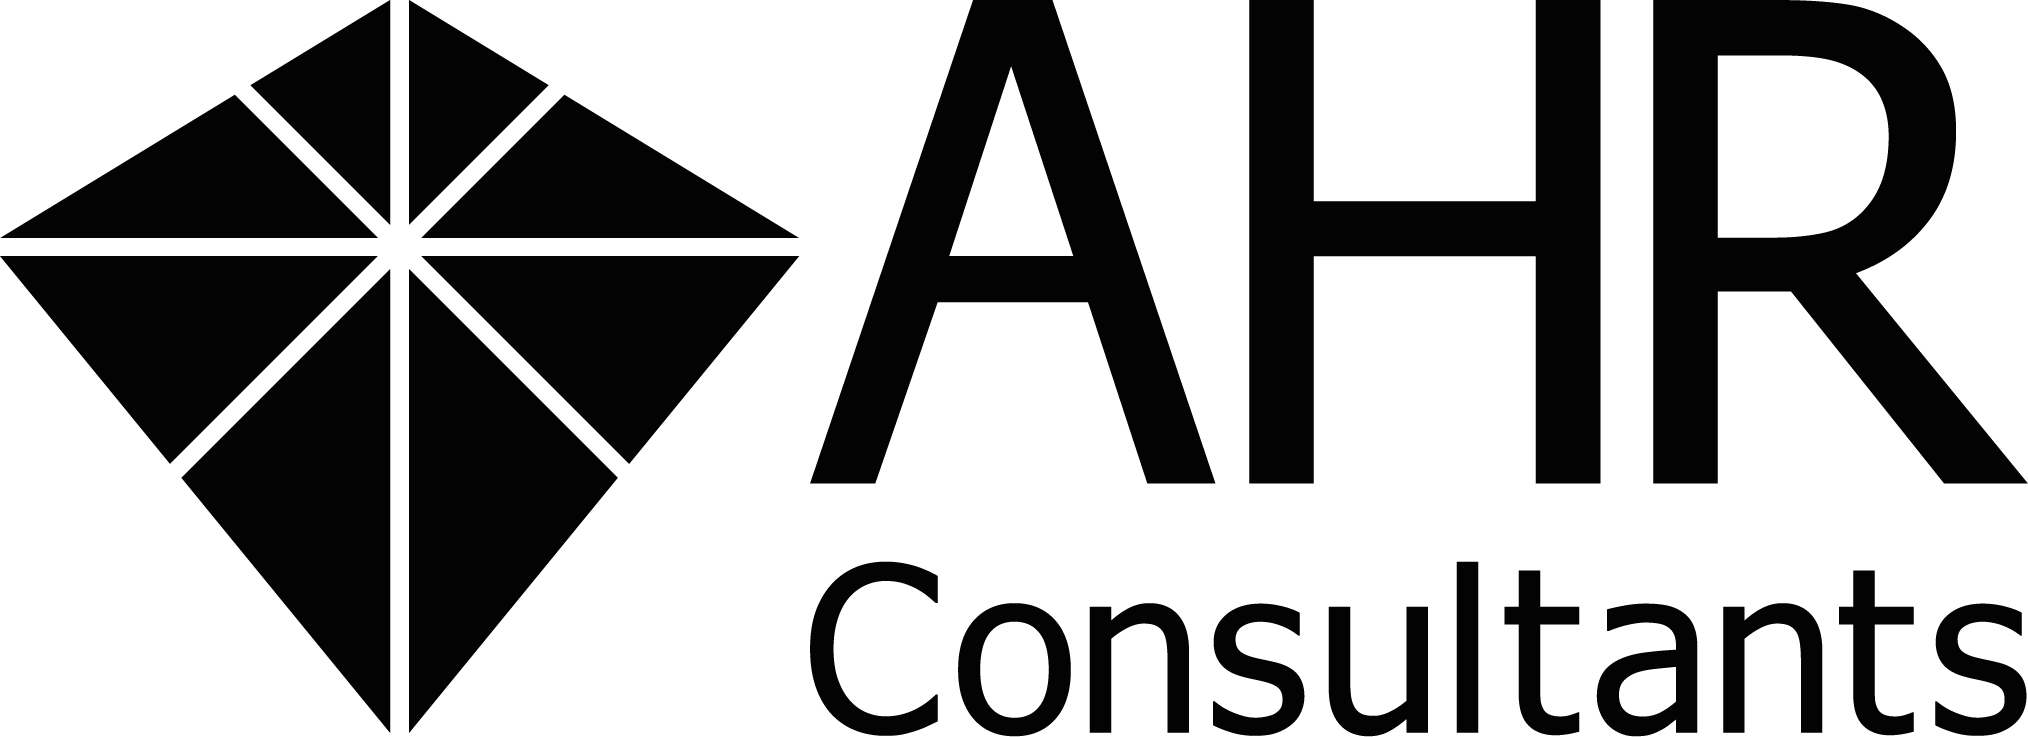 Logo for AHR Employment & Safety Services Ltd t/a AHR Consultants